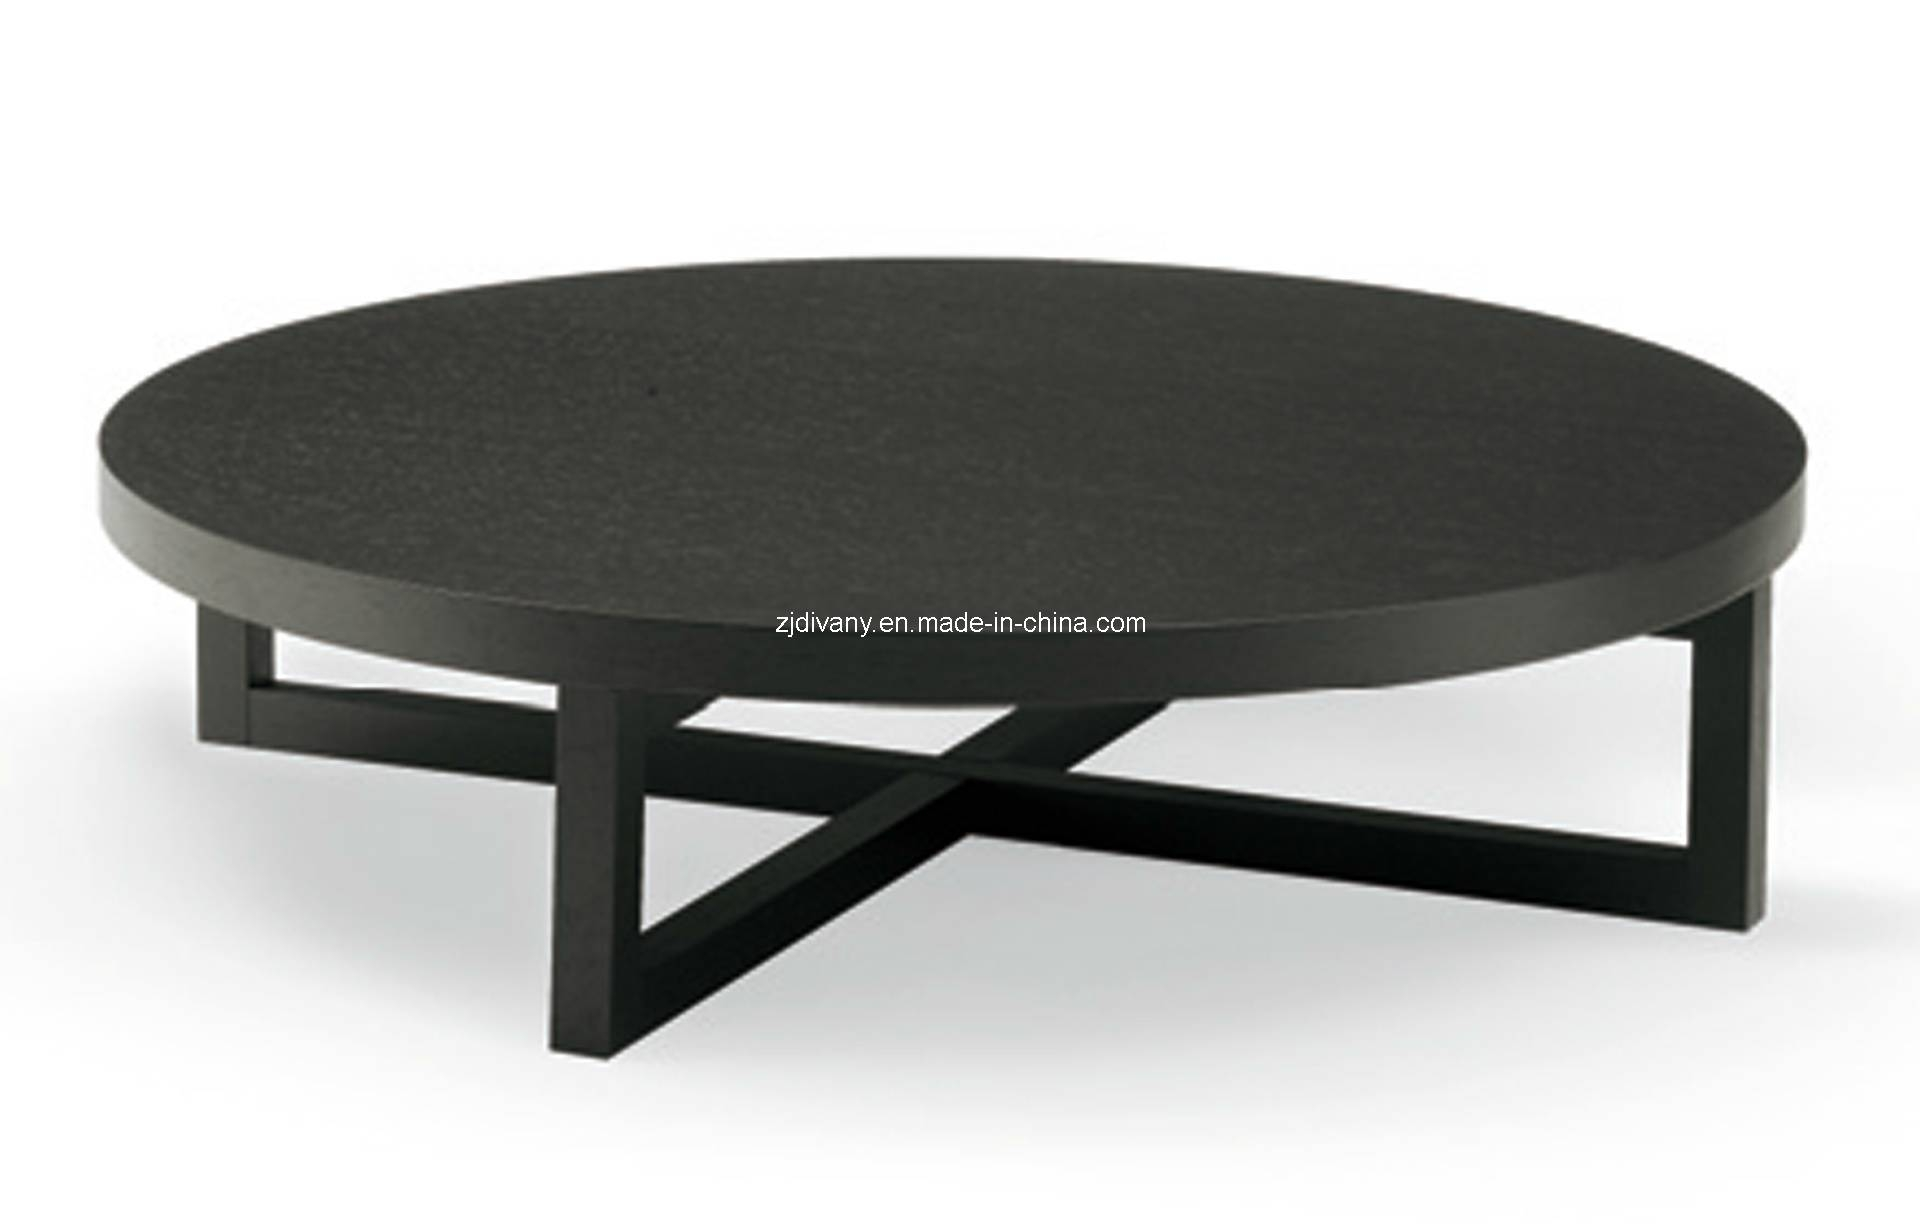 Coffee Tables Ideas: Splendid Trendy Coffee Tables Furniture Low intended for Low Wooden Coffee Tables (Image 4 of 15)